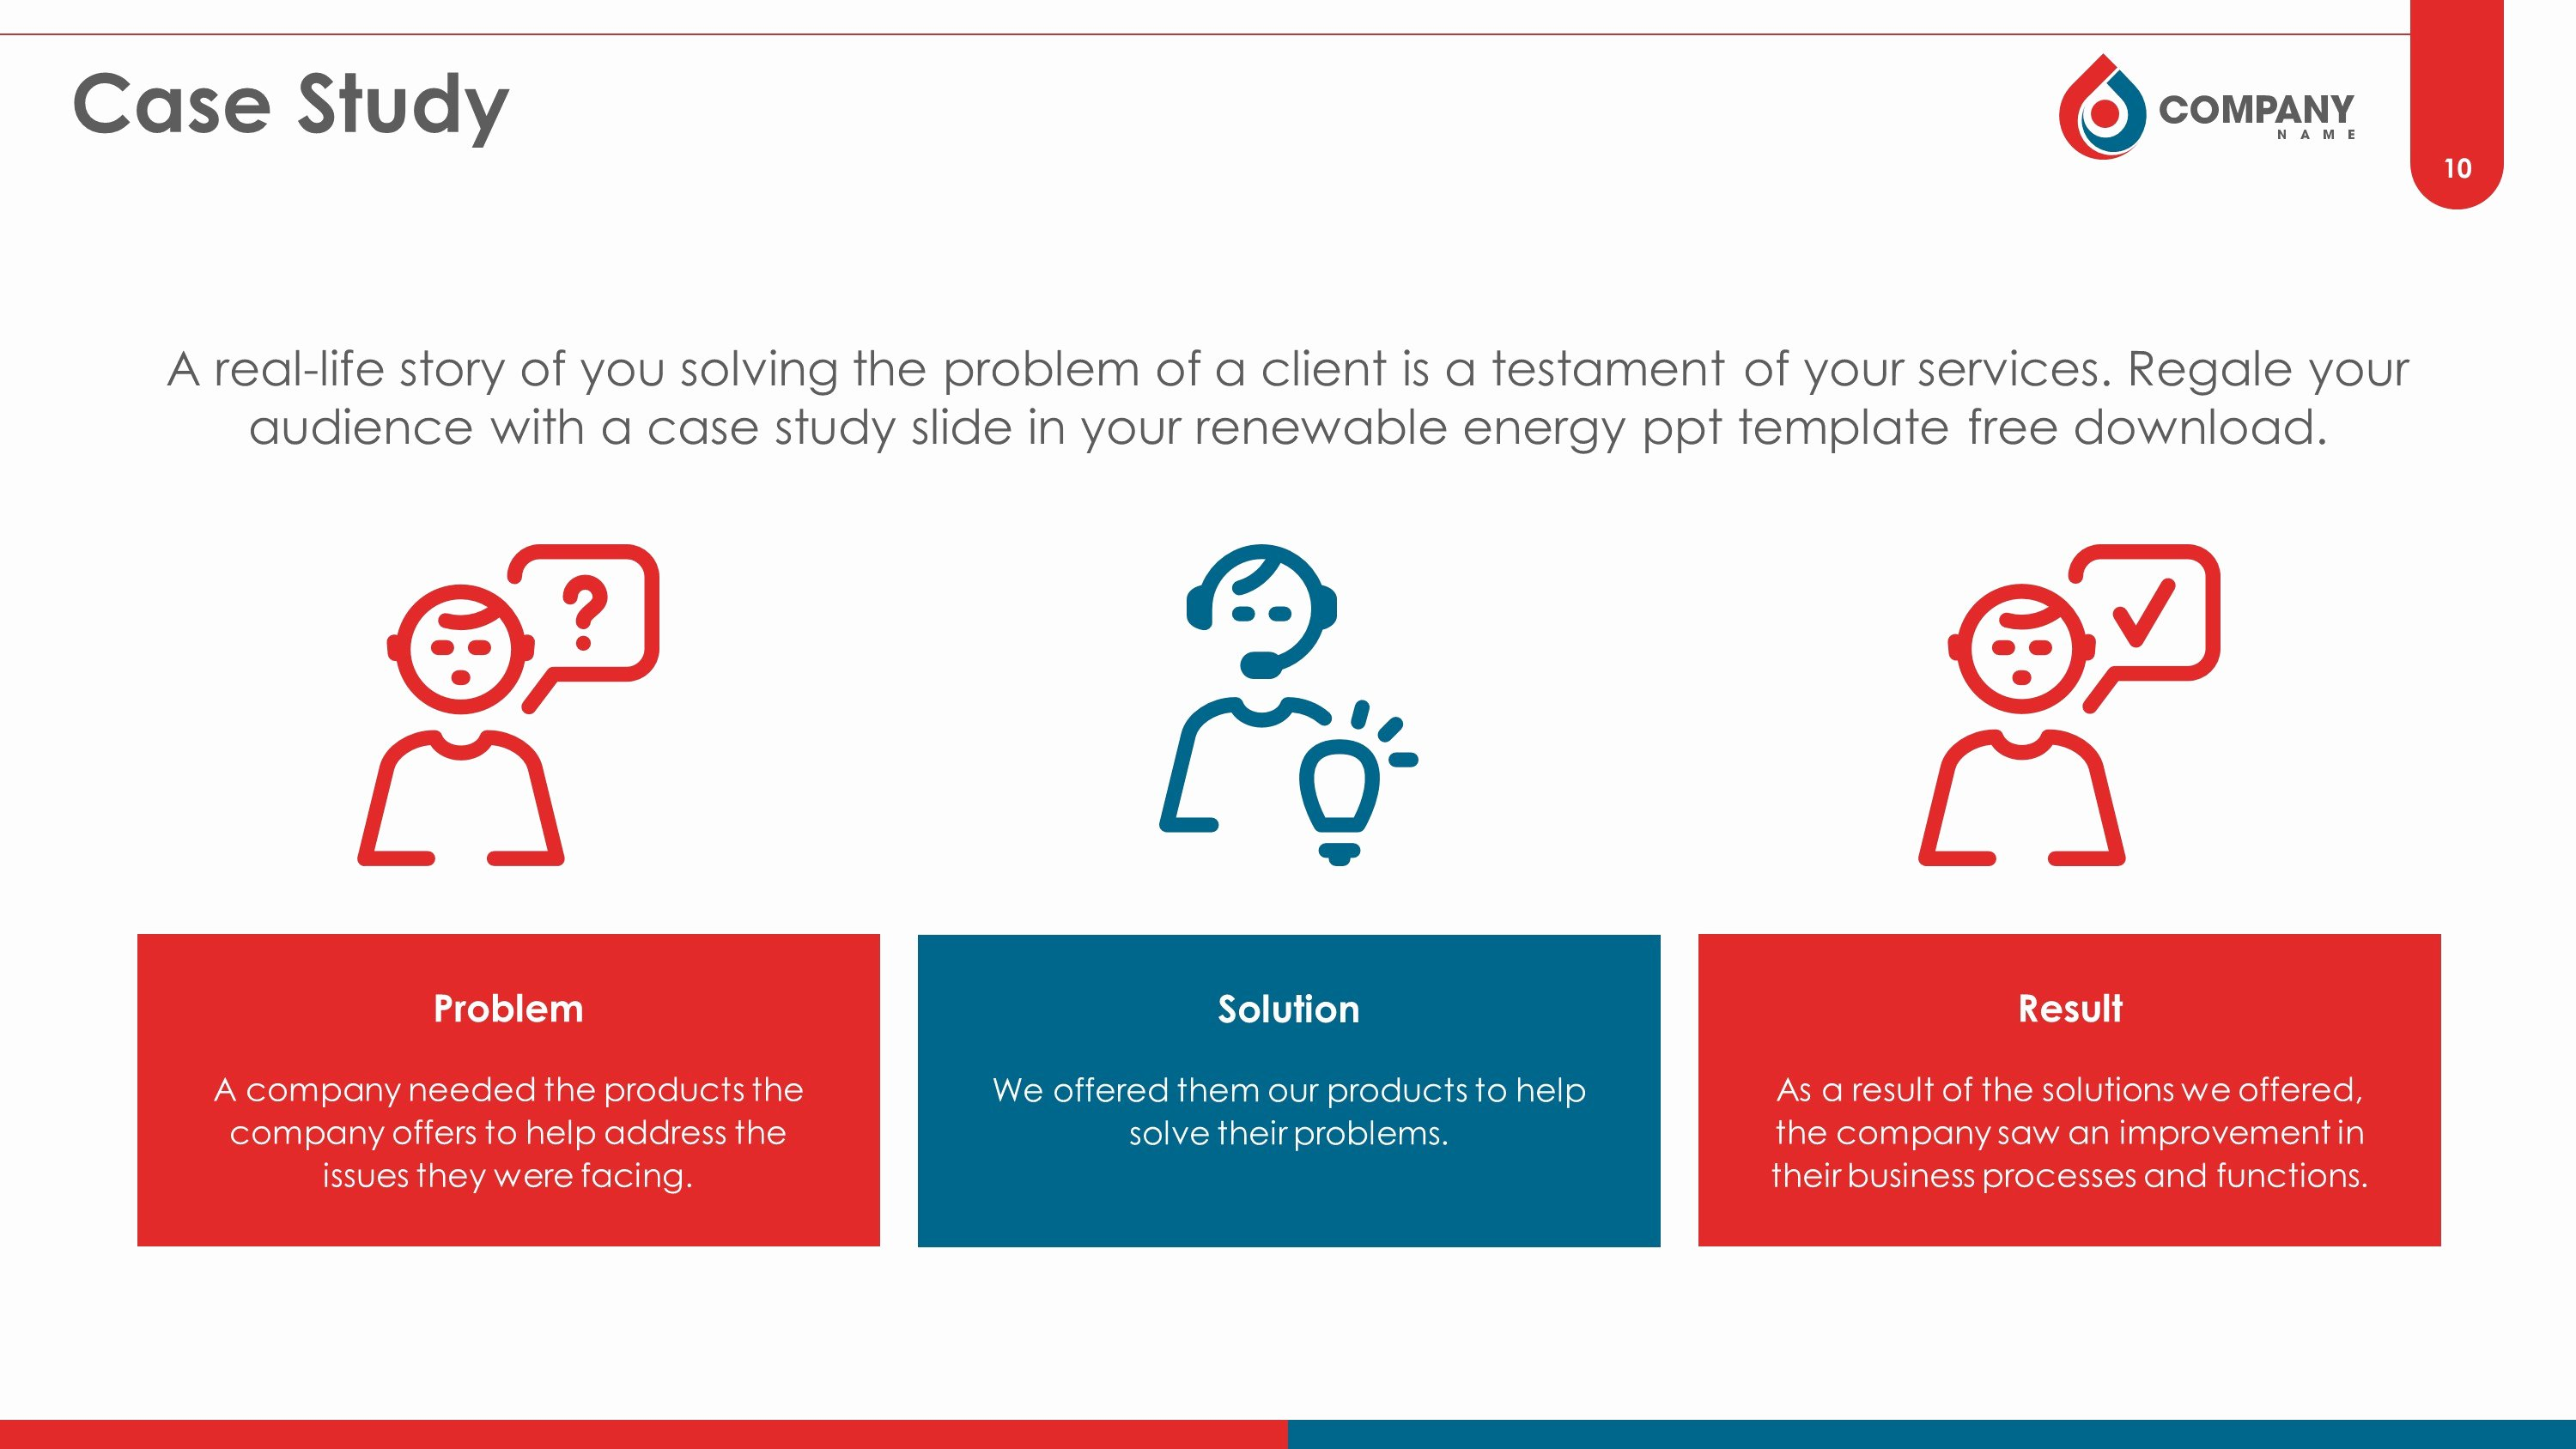 Case Study Template Ppt Fresh Oil and Gas Premium Powerpoint Template Slidestore